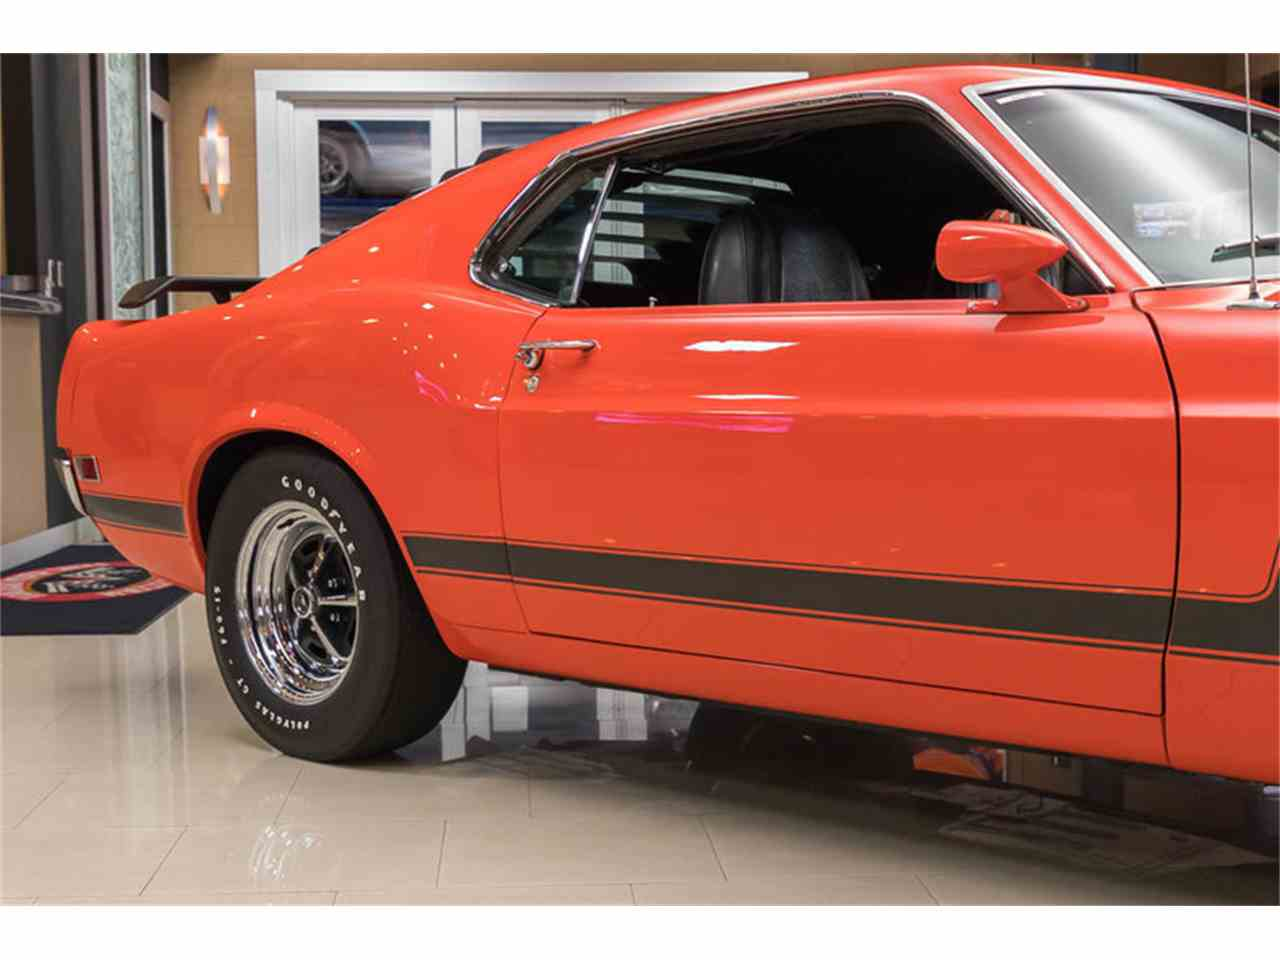 Large Picture of Classic 1970 Ford Mustang located in Michigan - $89,900.00 - GR9E